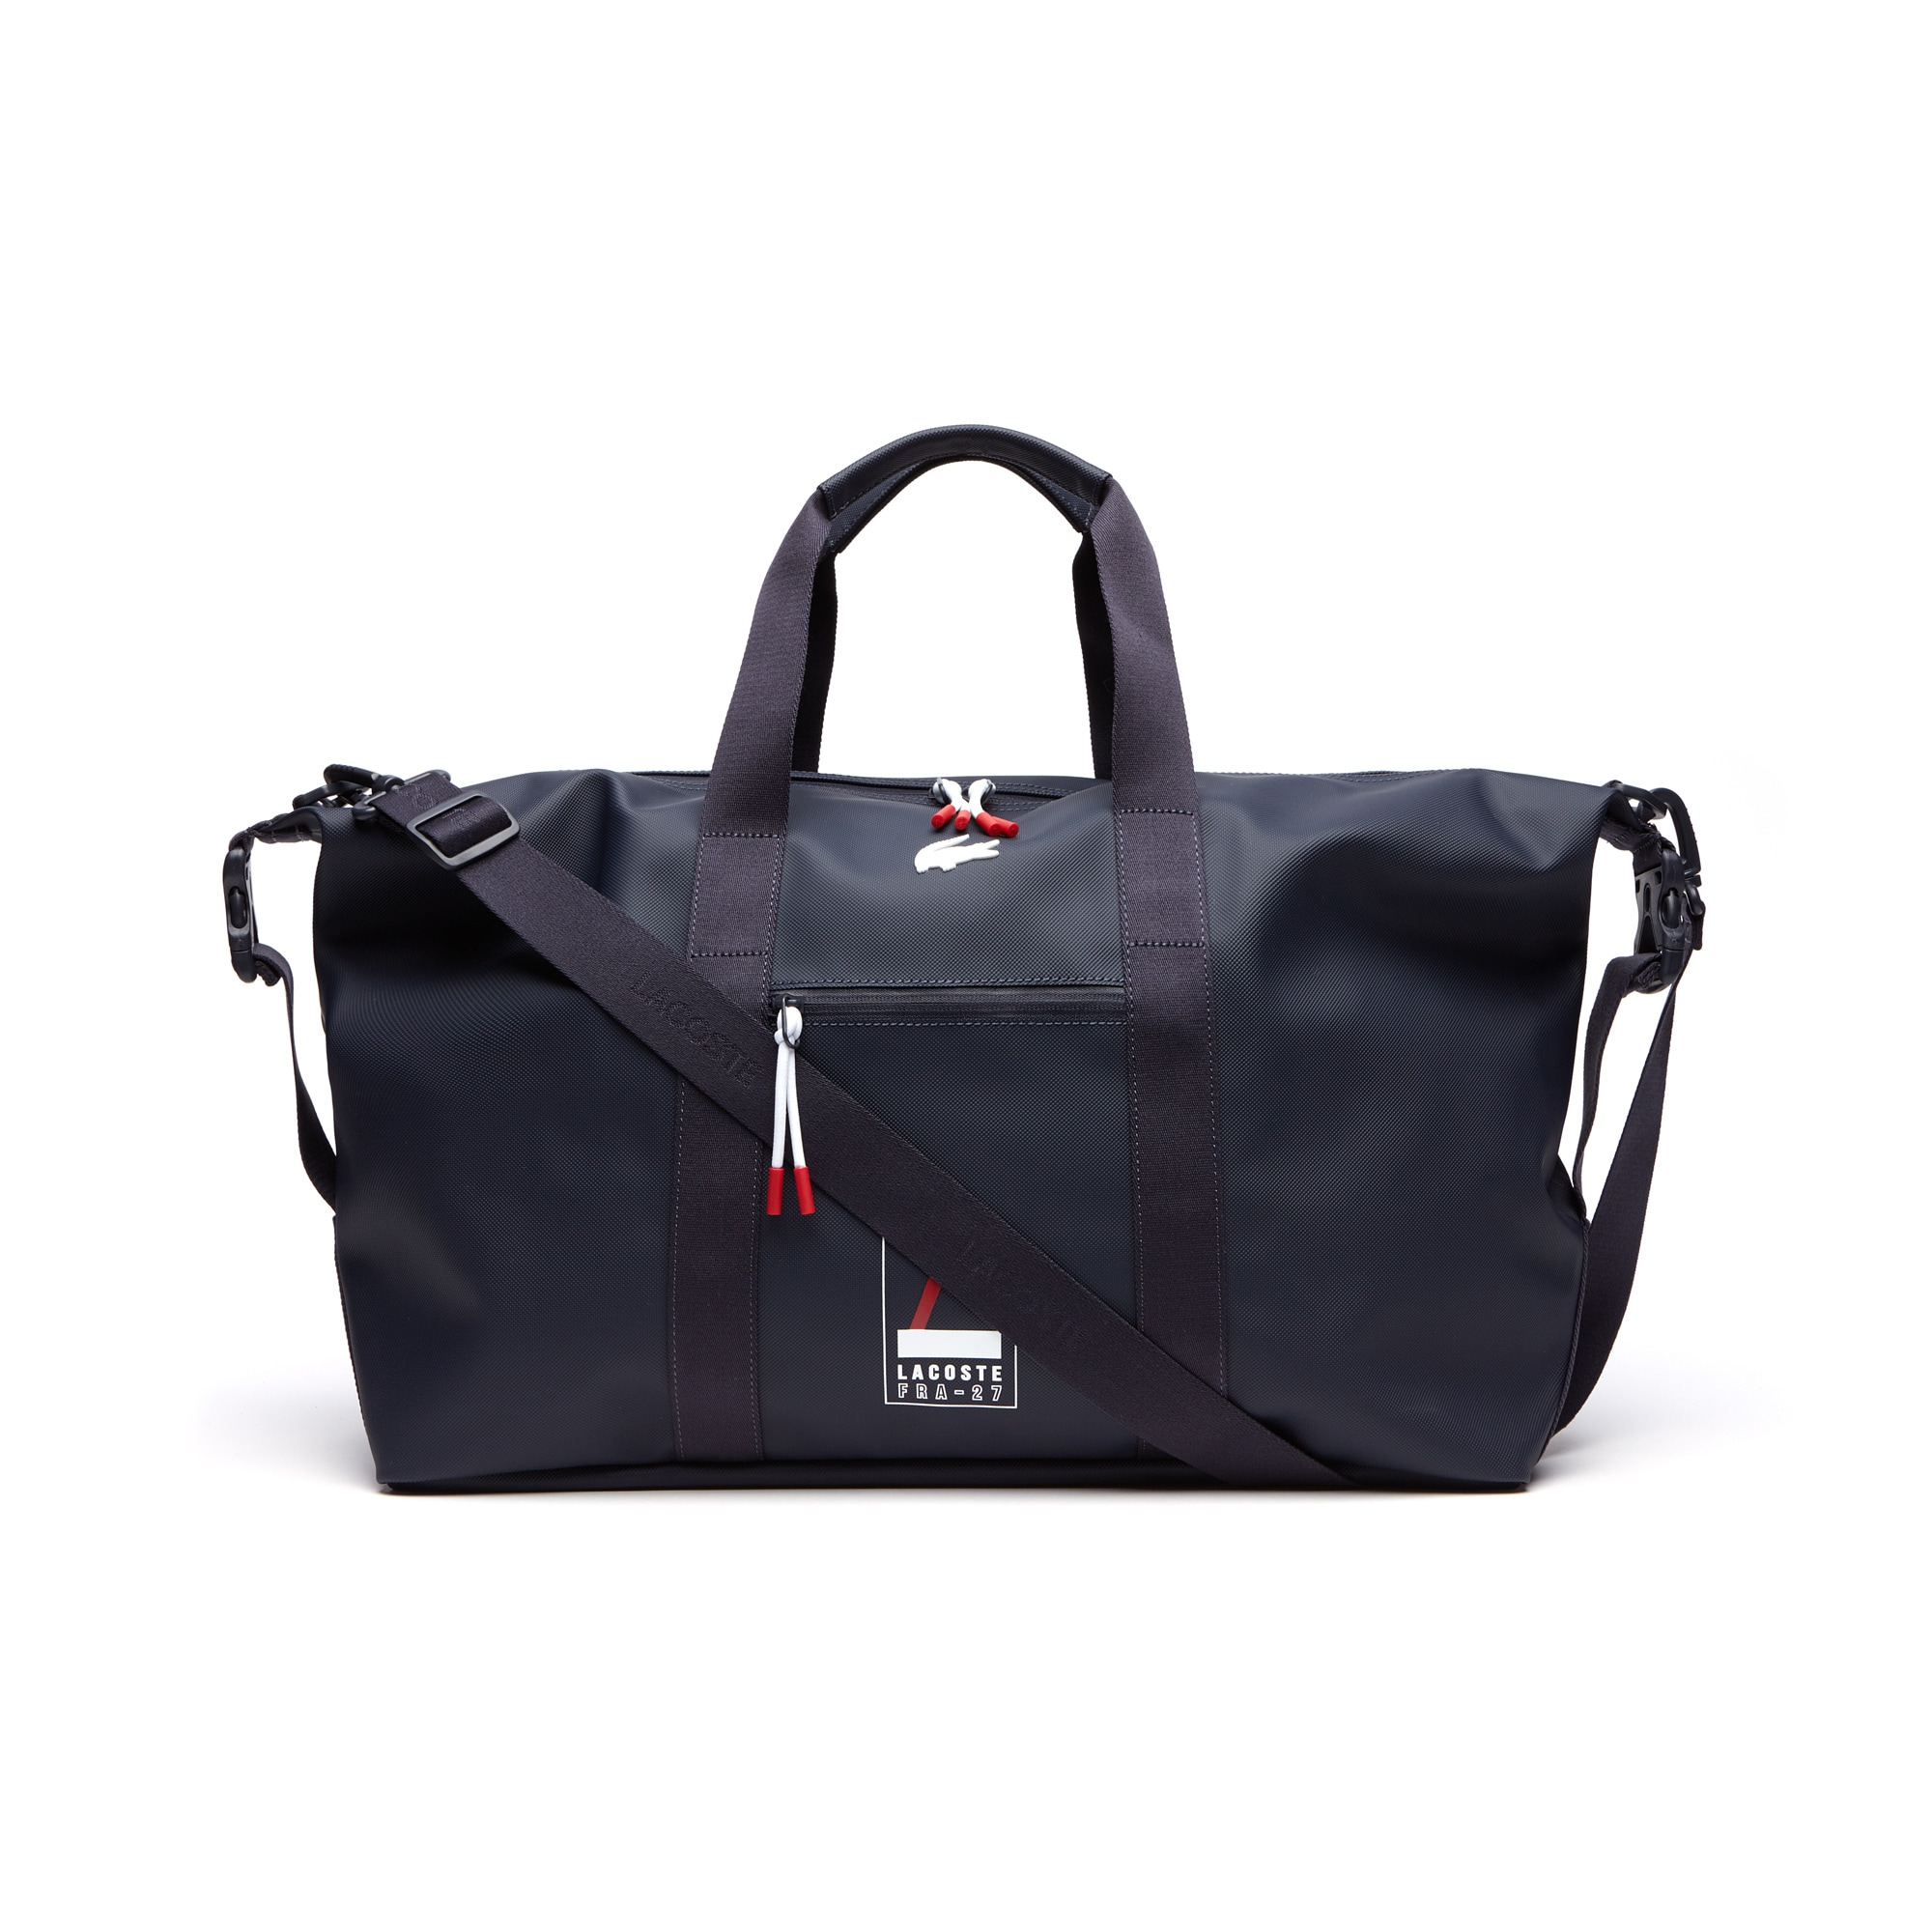 Men's L.12.12 Concept Lettering Petit Piqué Weekend Bag